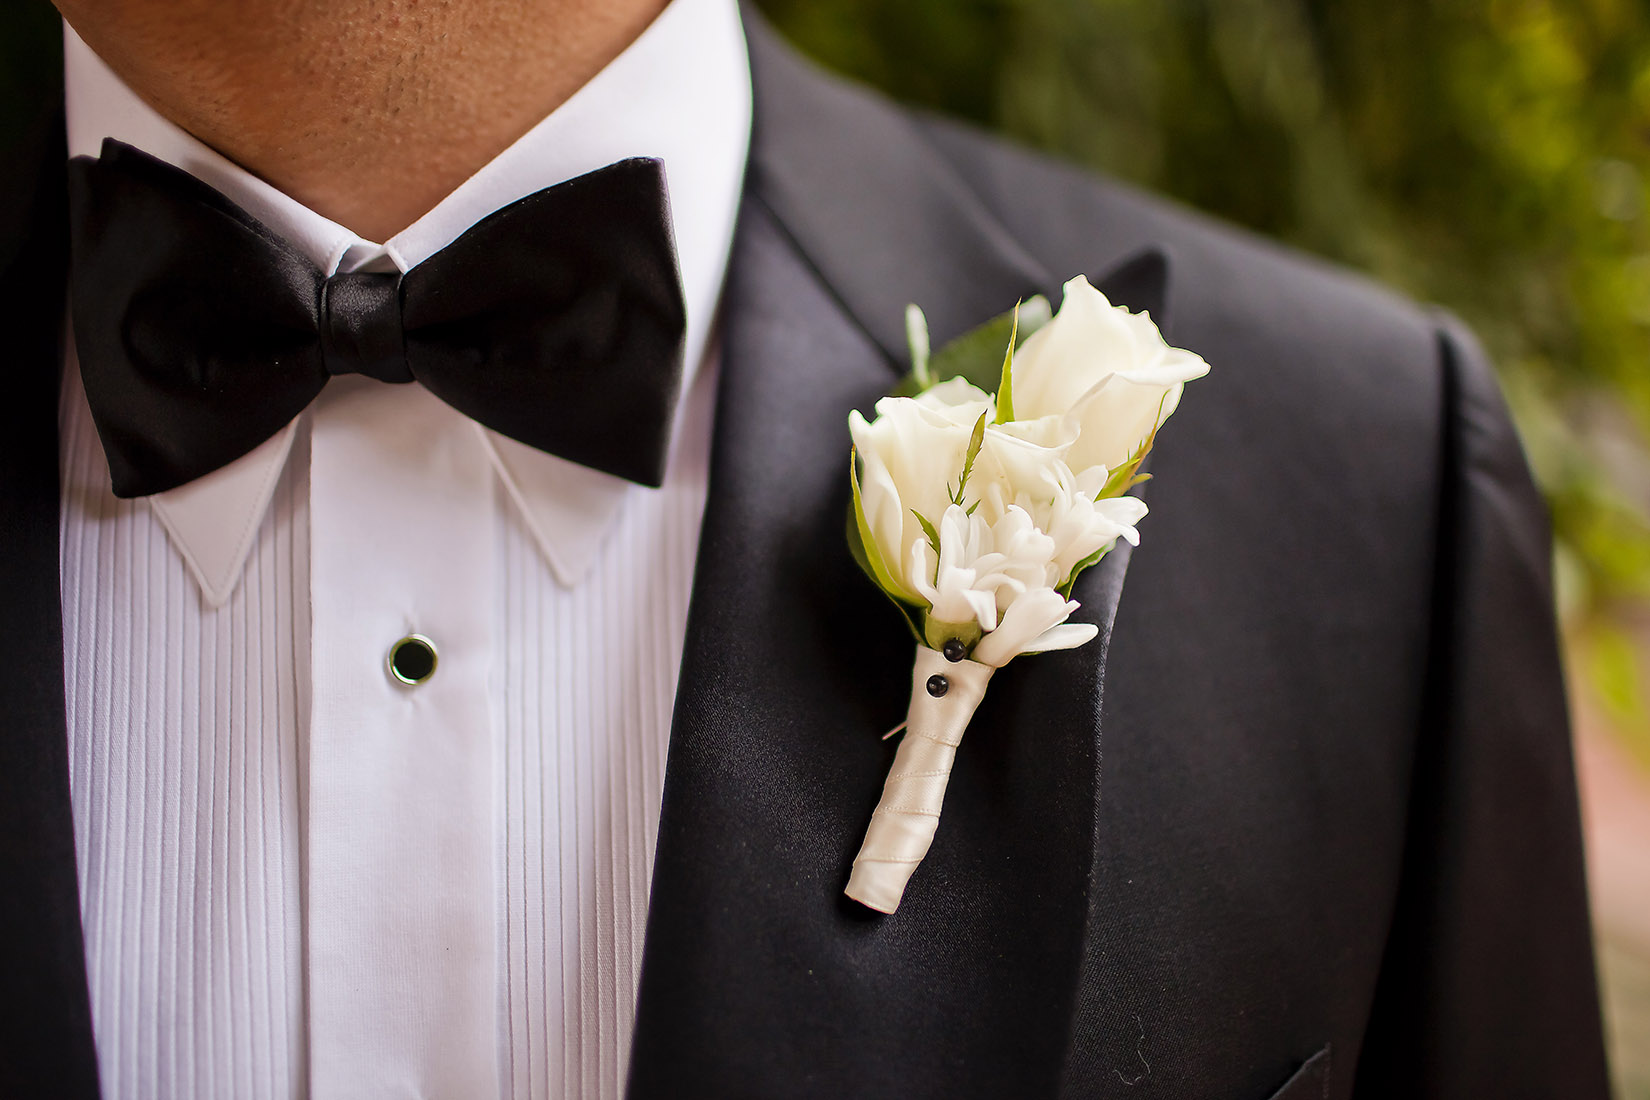 An image of a white rose boutonniere from the Lindsay & Shawn Wedding